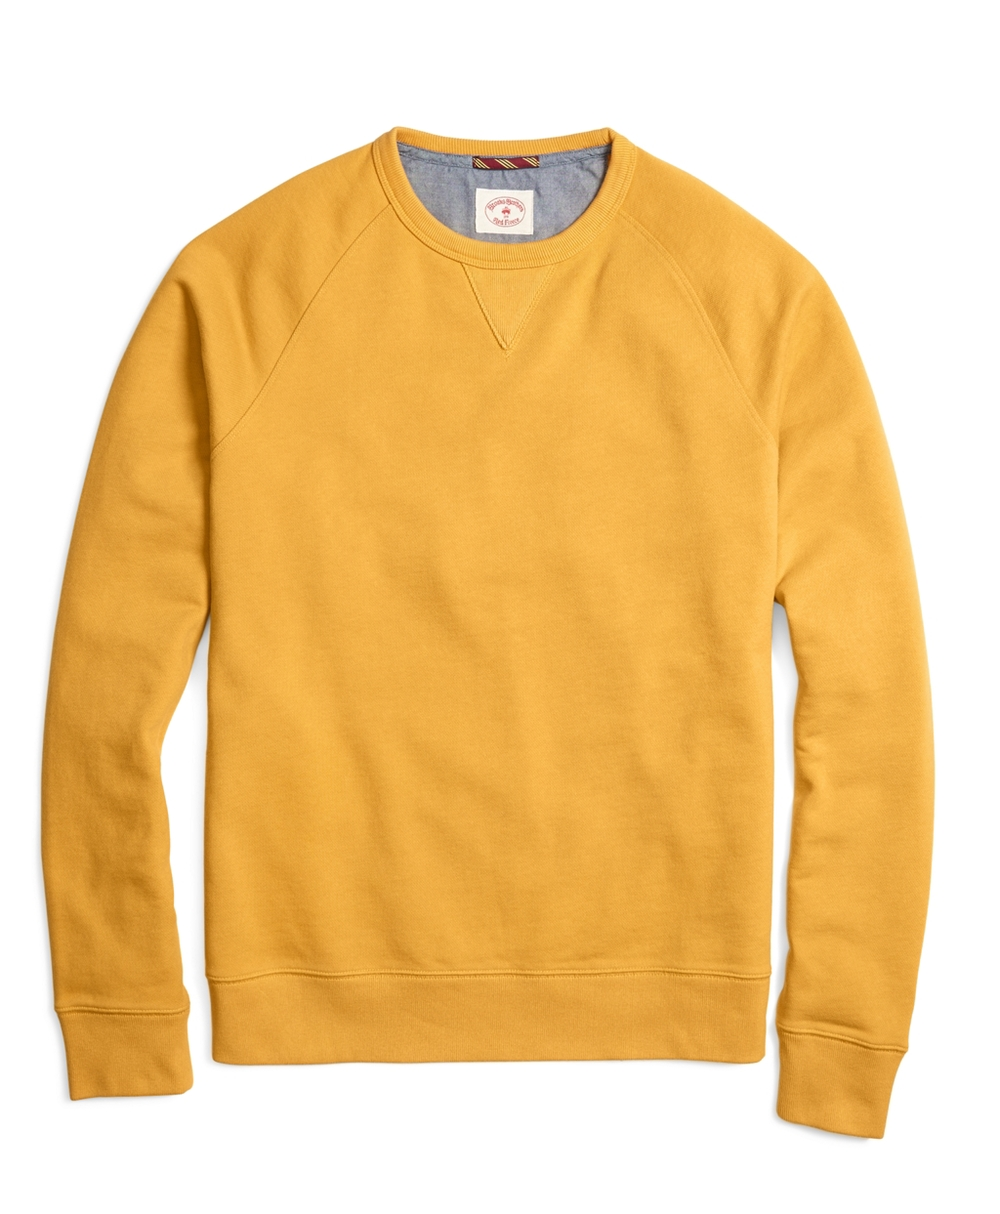 Brooks Brothers Raglan Crewneck    $ 34.75